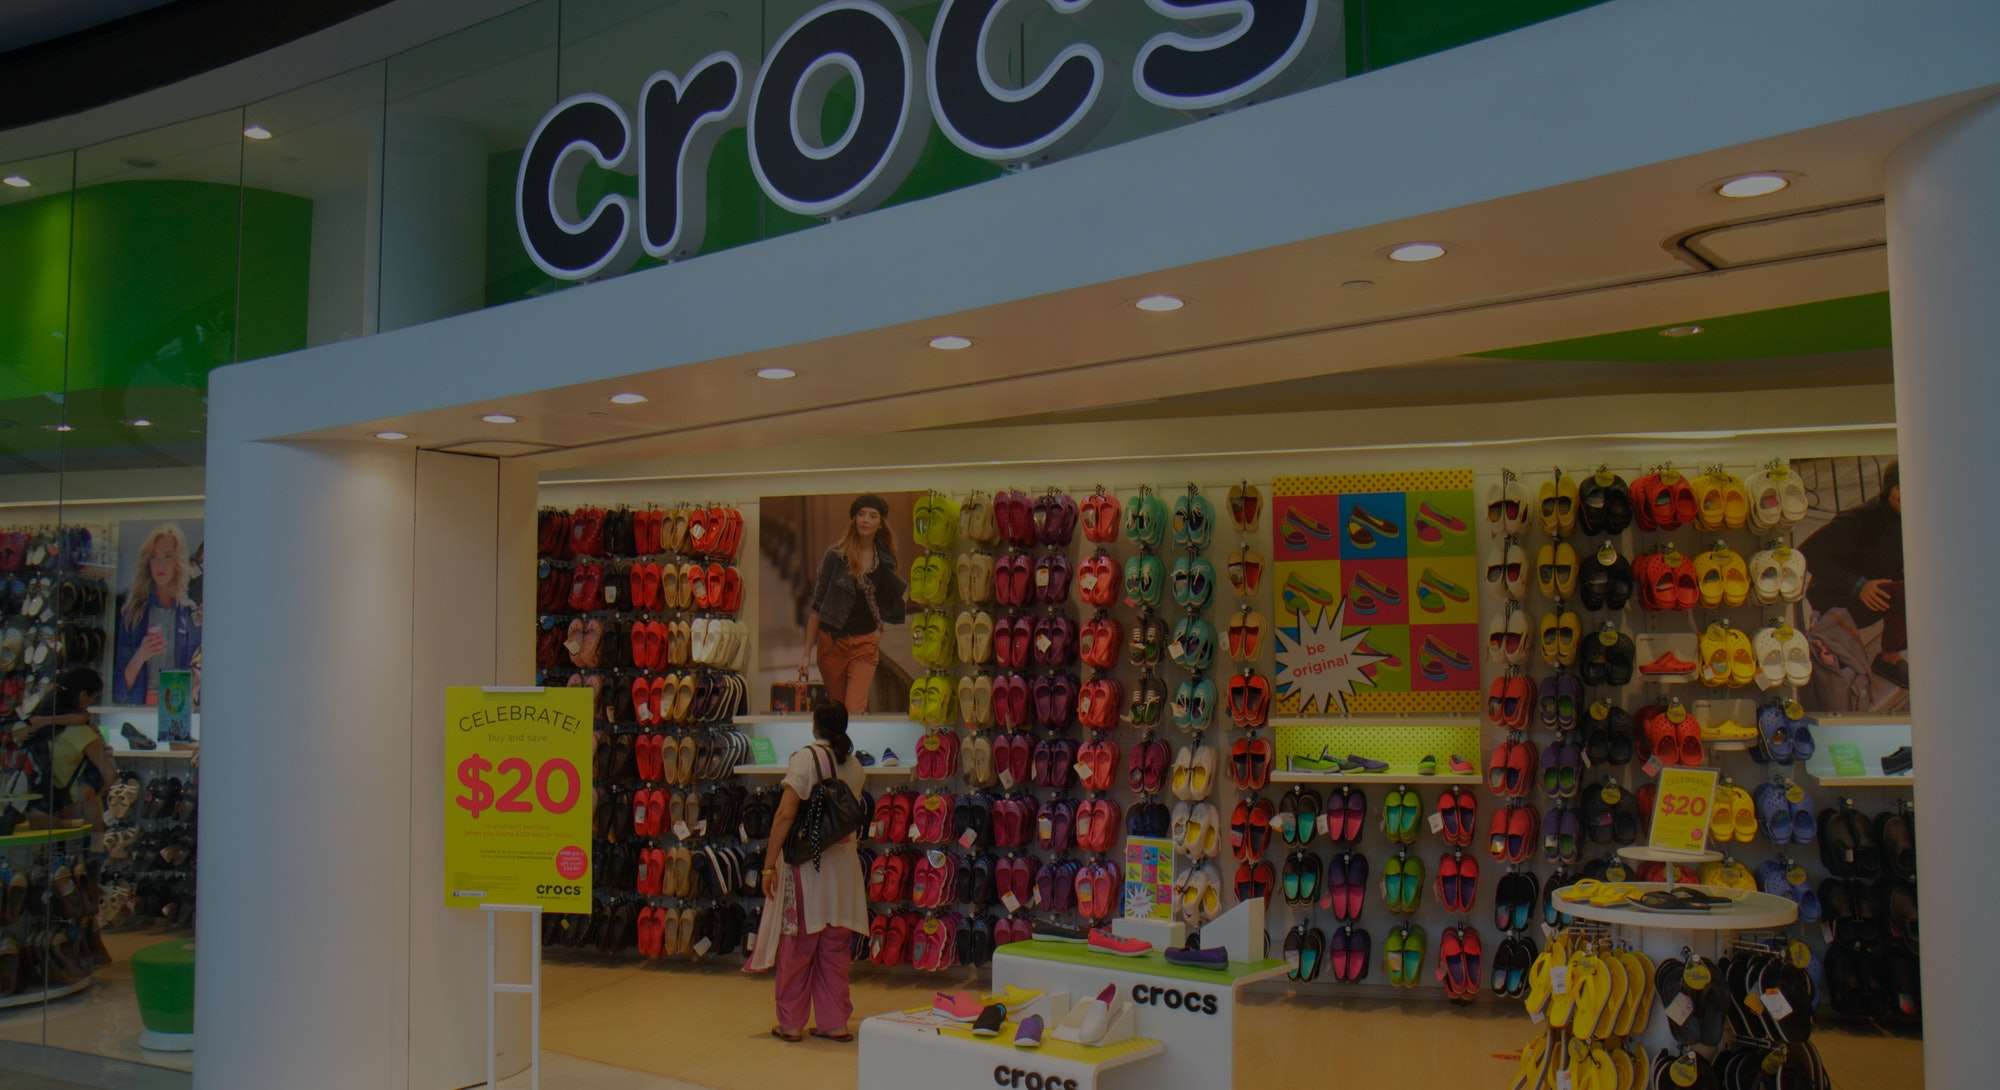 The entrance to Crocs at The Shoppes at Marina Bay Sands. (Photo by: Jeff Greenberg/Universal Images...